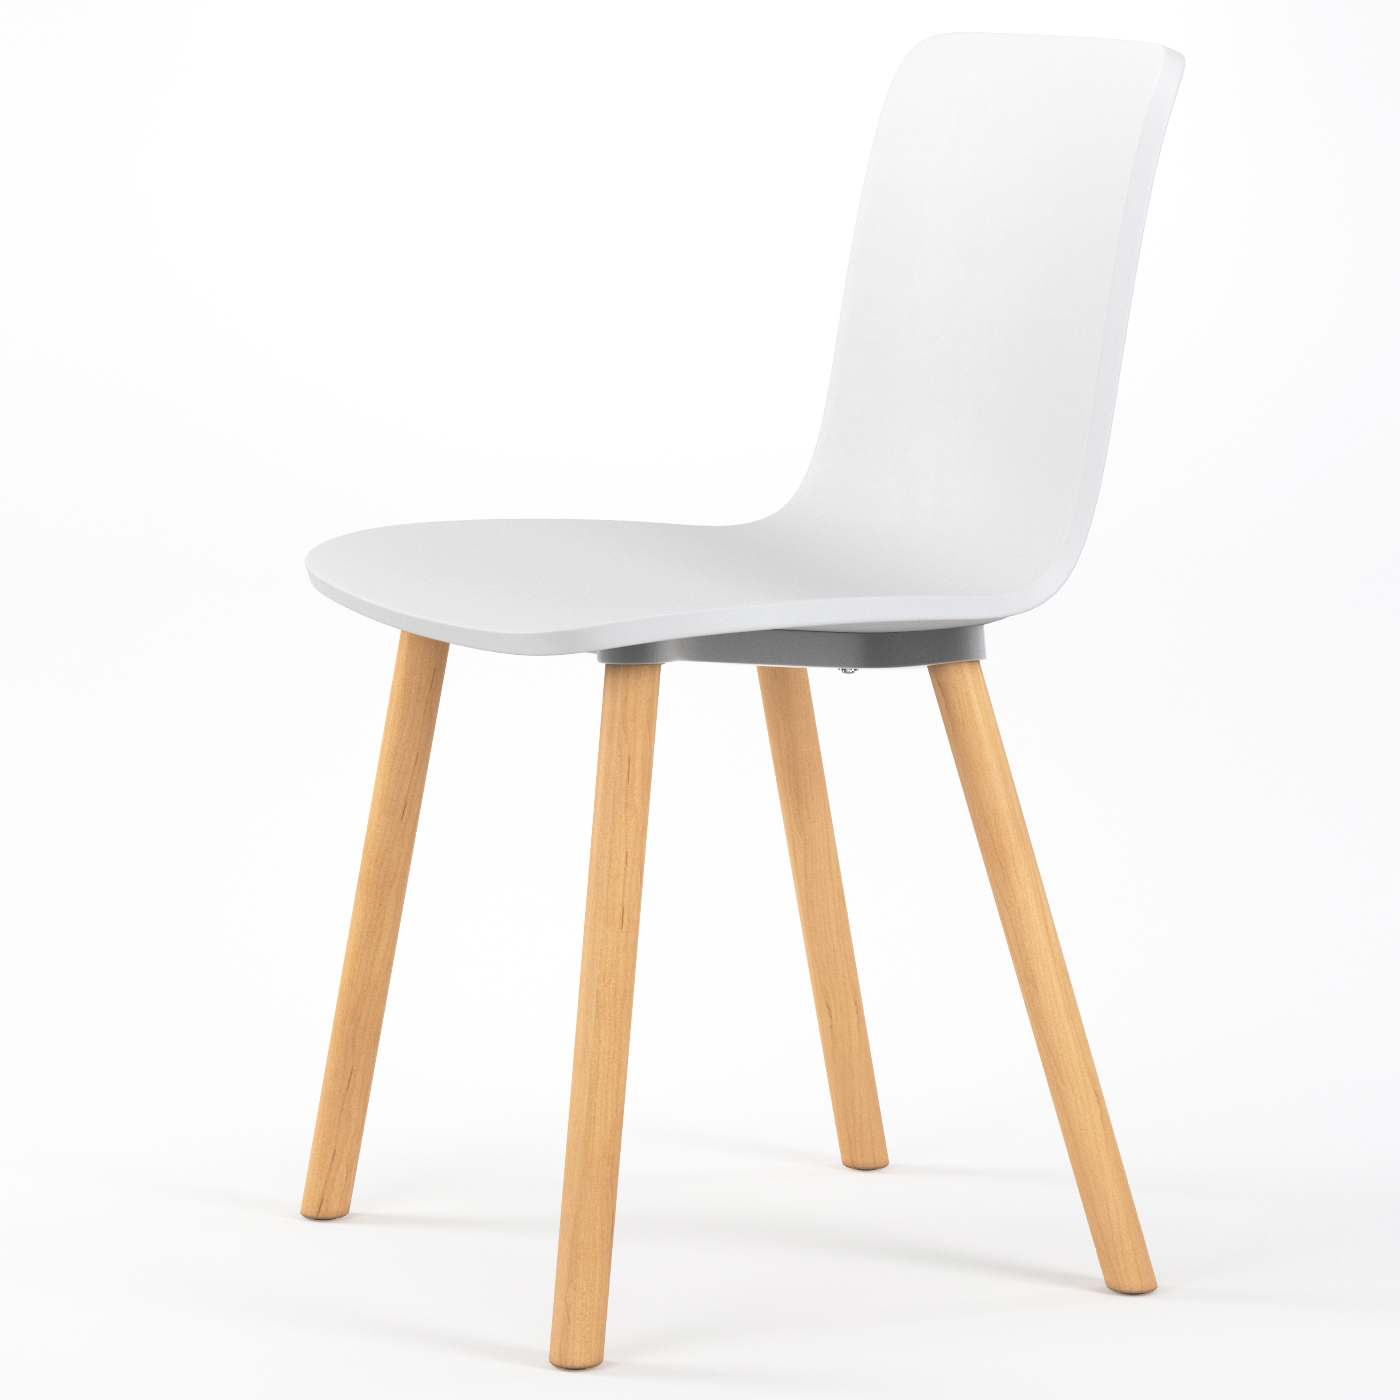 Studio plastic modern dining chair in white for White plastic dining chair